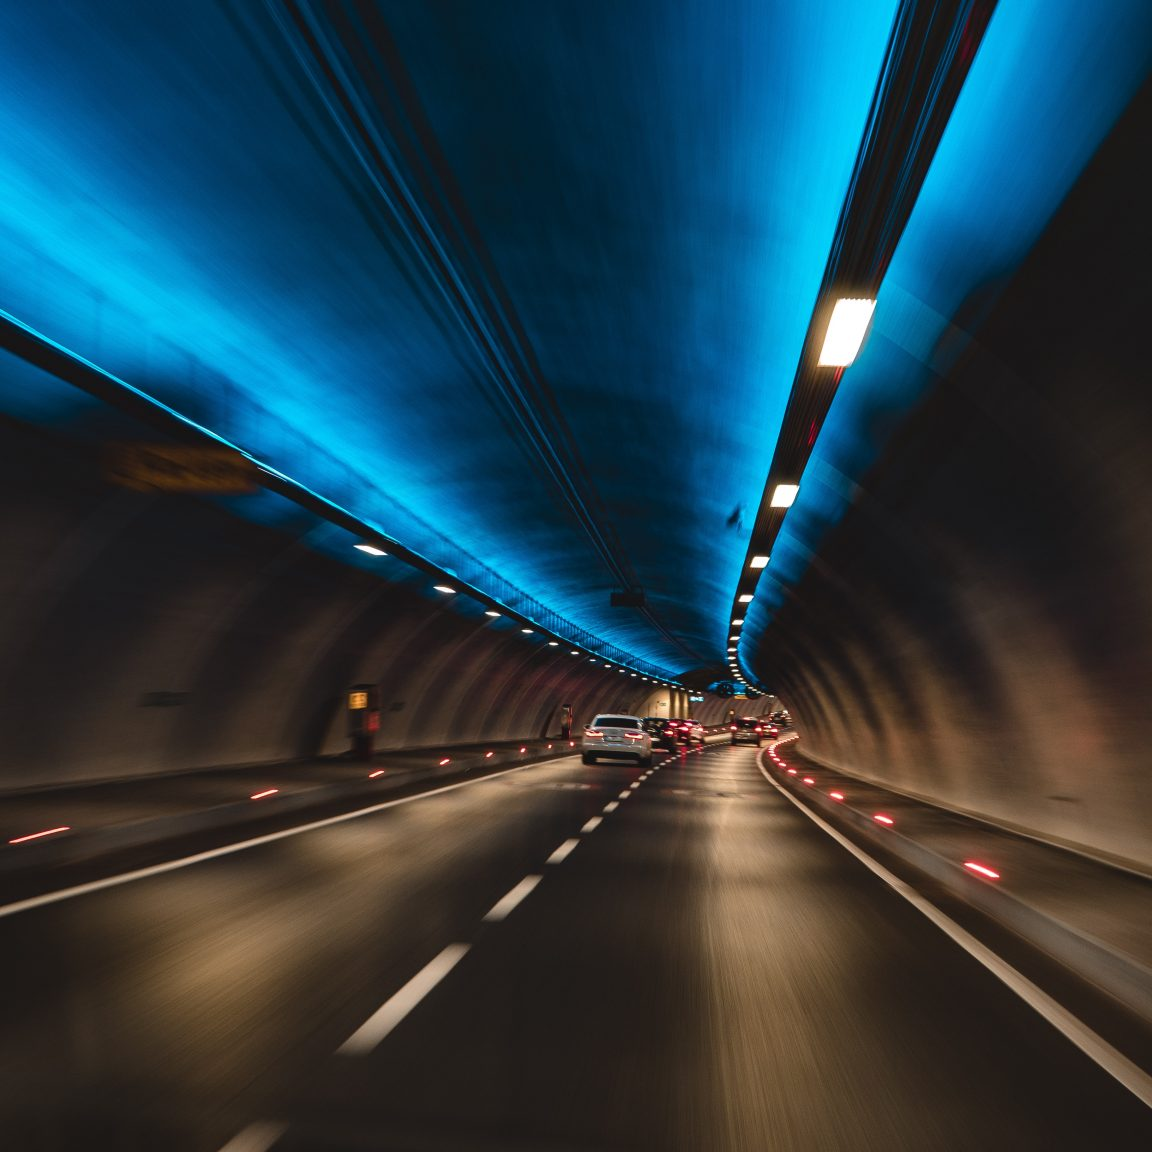 timelapse-photography-of-cars-in-tunnel-1253049